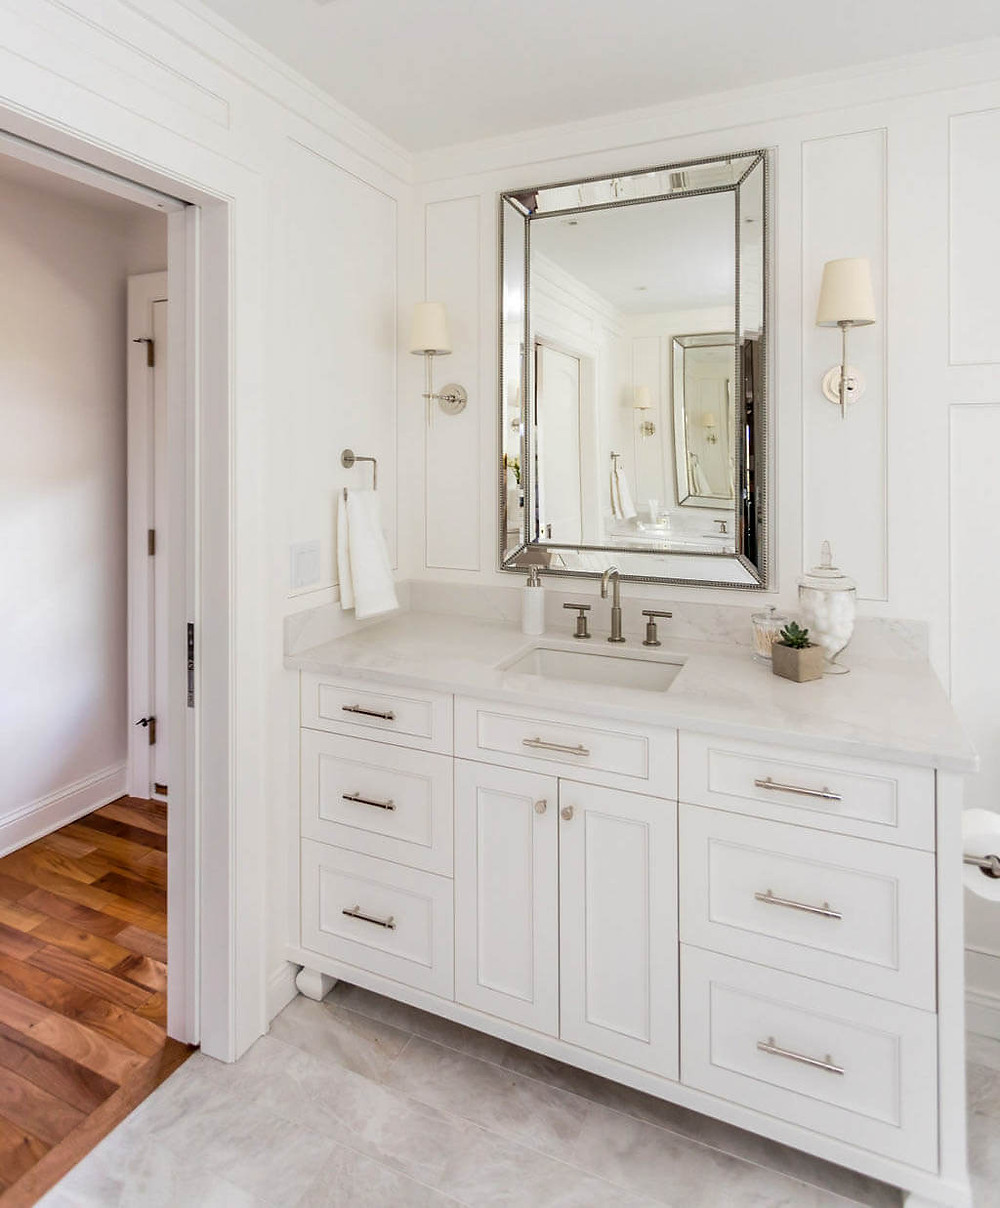 Custom traditional white painted vanity with elegant millwork